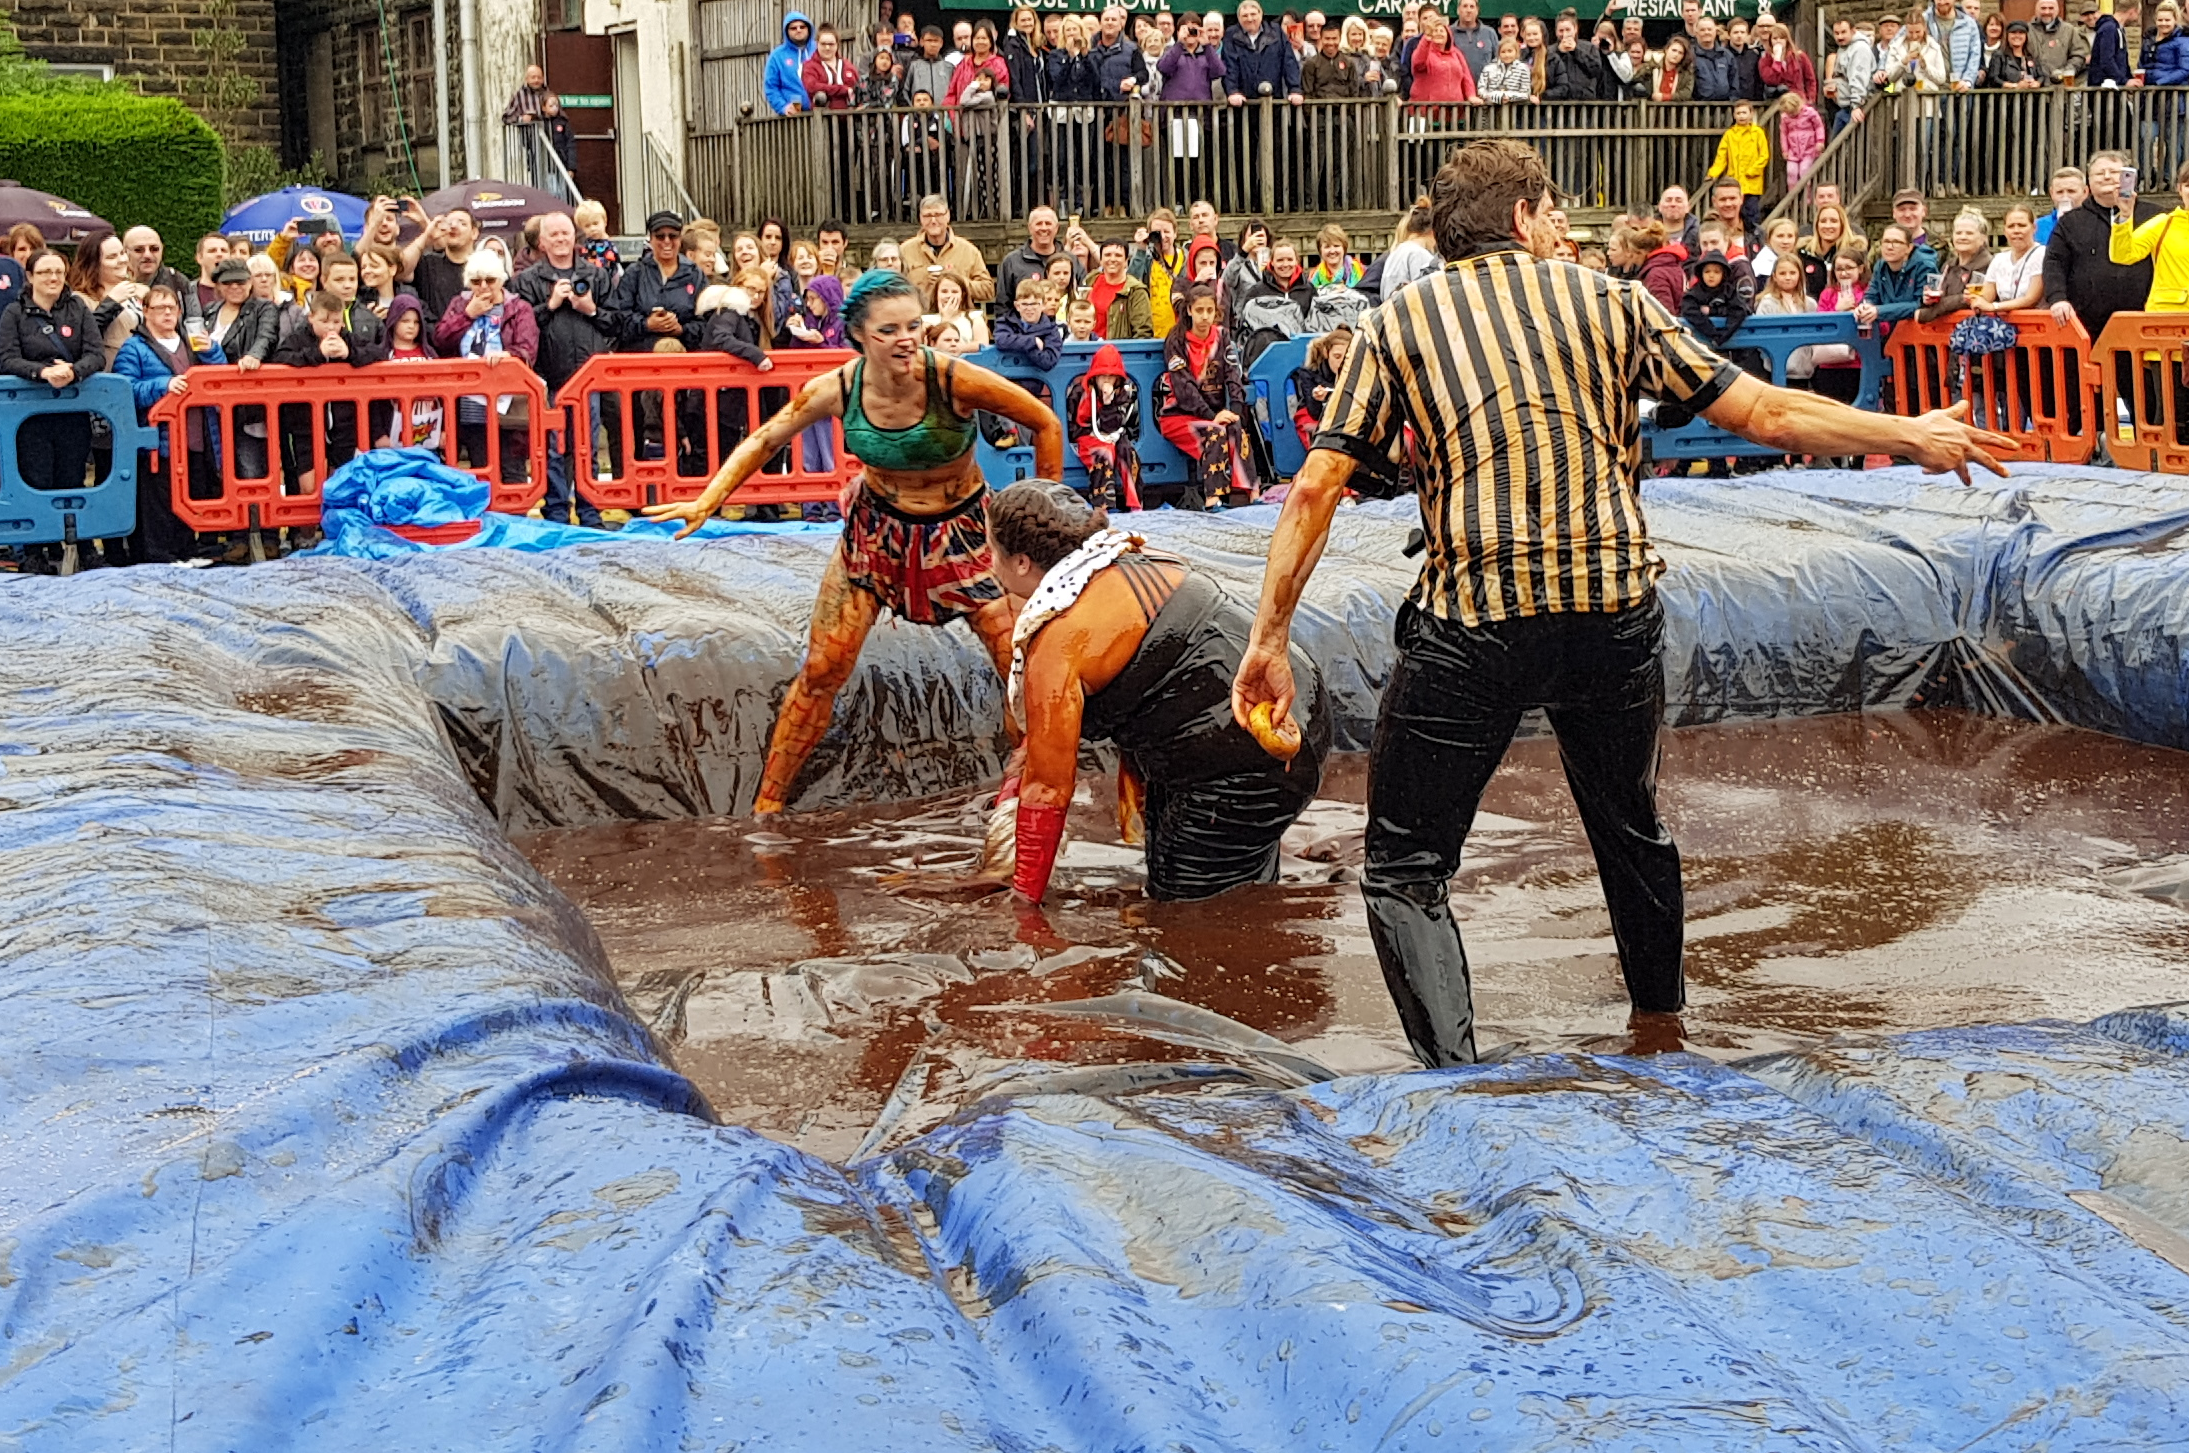 Gravy Wrestling 2018 - Cruella de gravy and Britains next top muffin 3